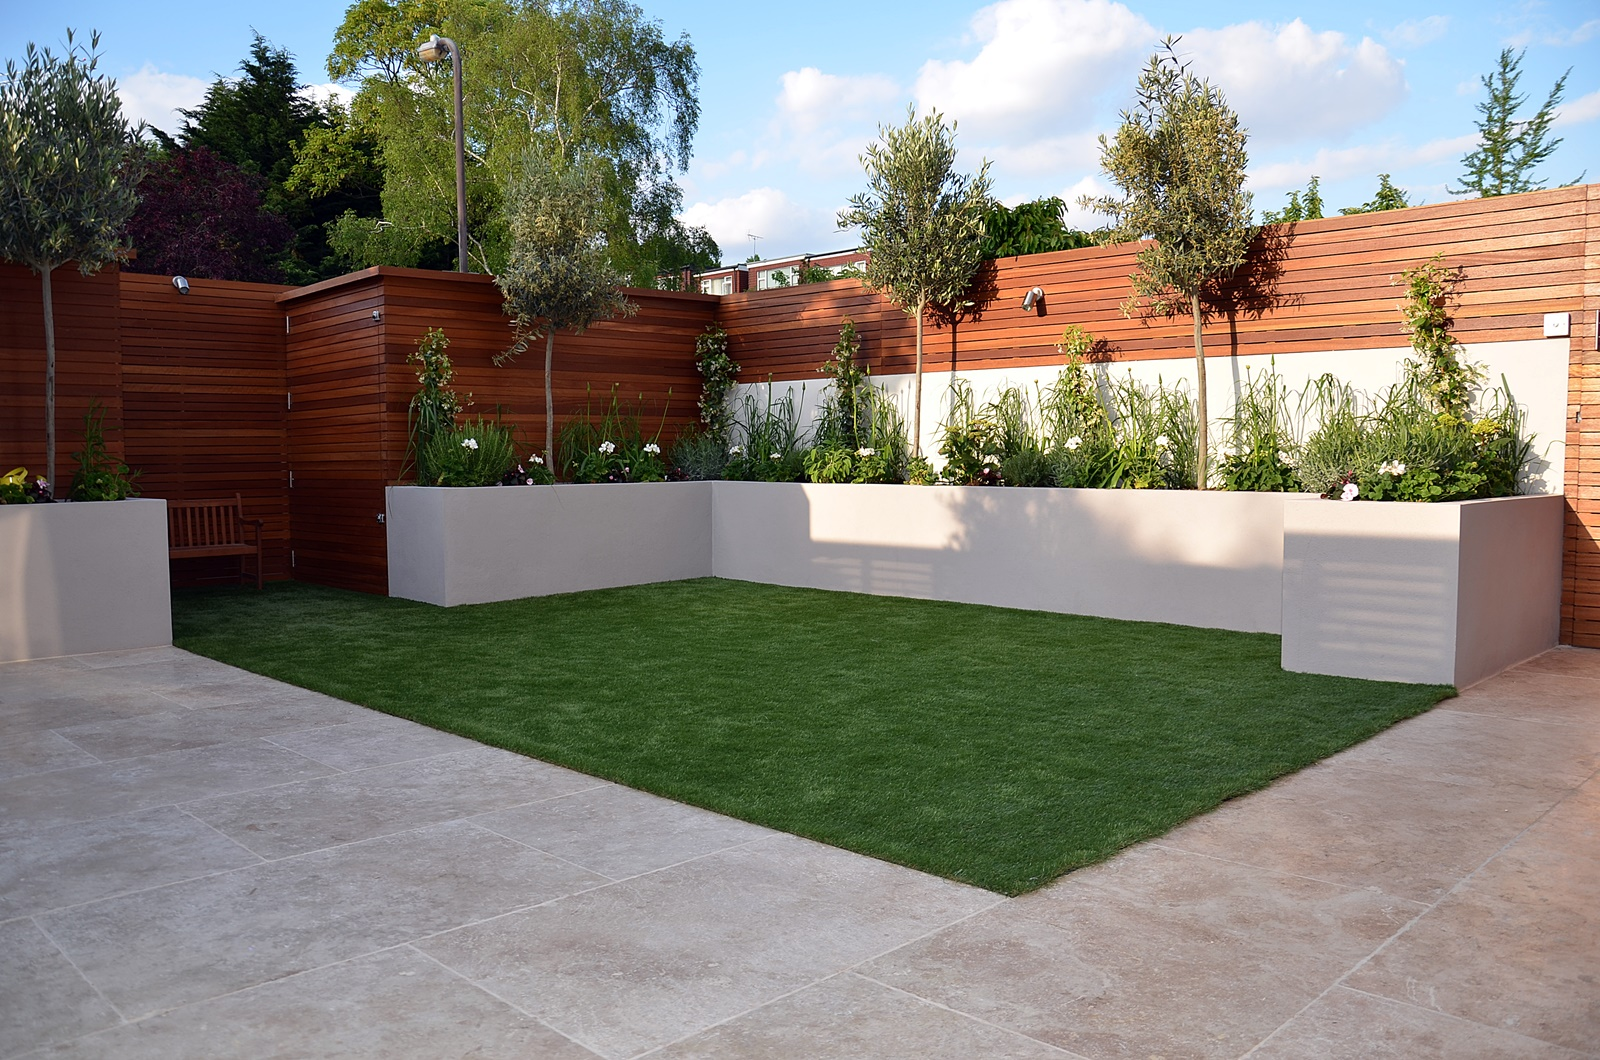 Modern london small garden design london garden blog for Small garden design plans